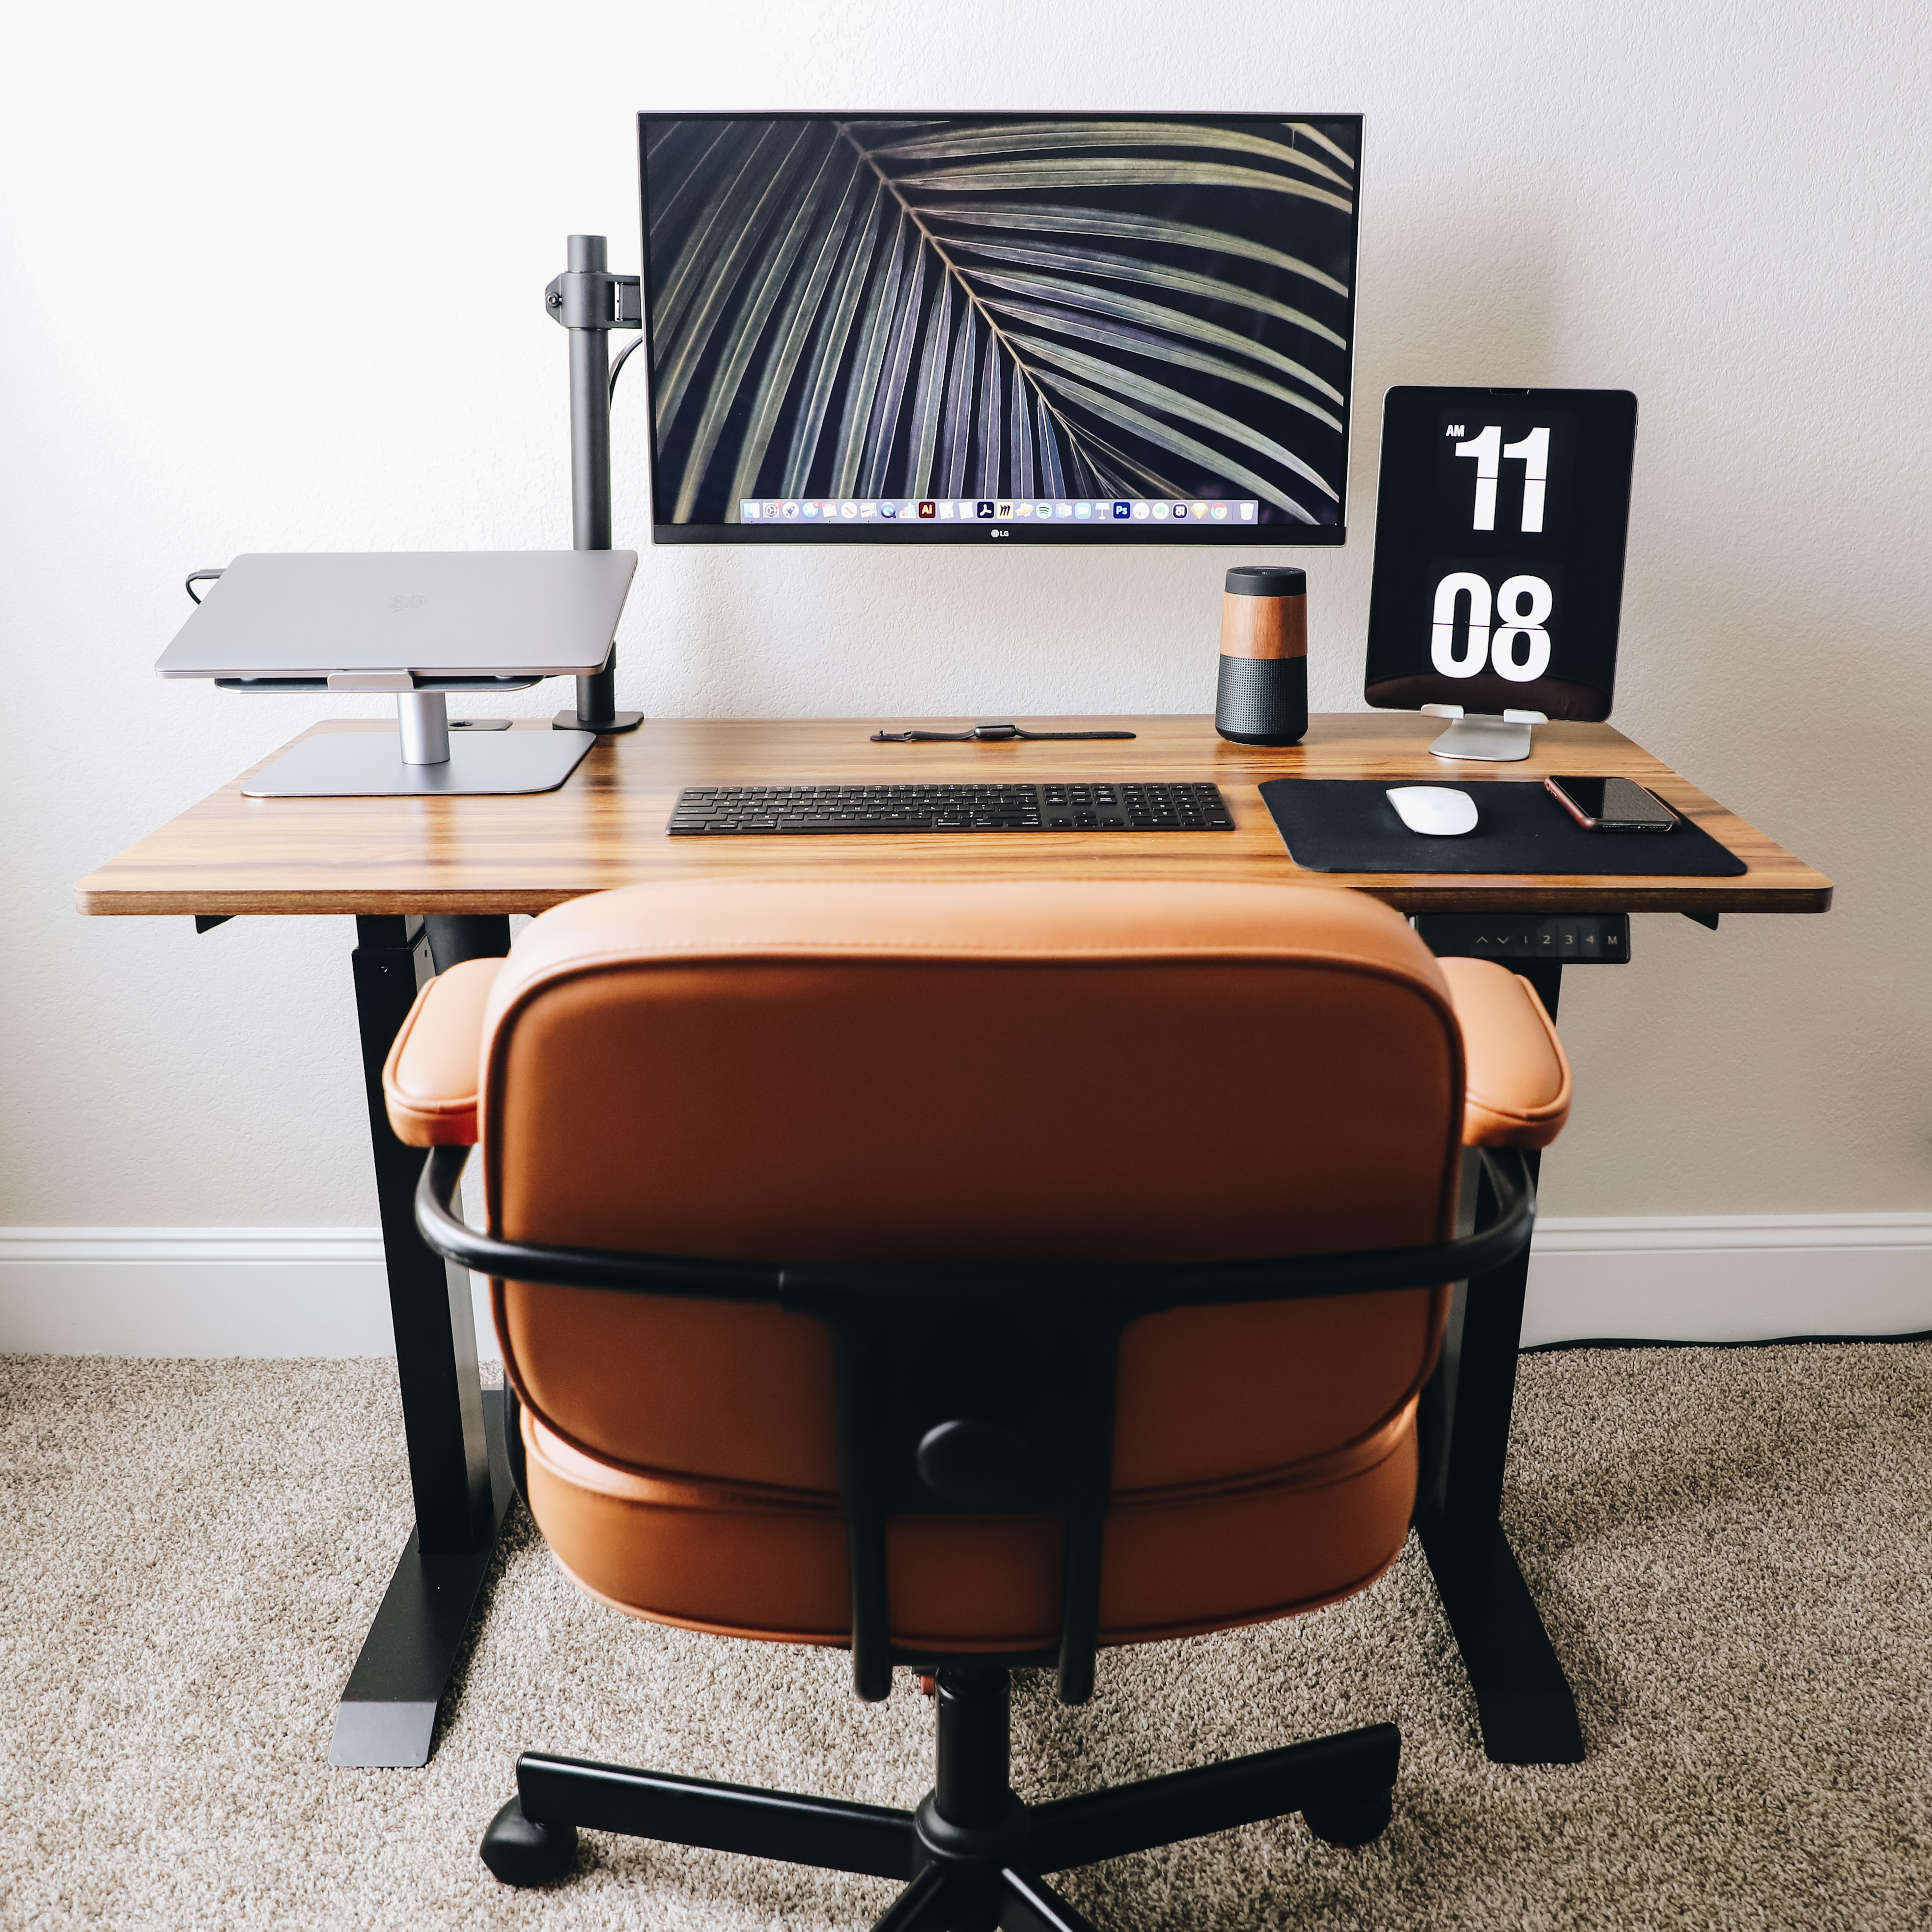 The 8 Best Office Chair Mats for Carpet (2021 Review)